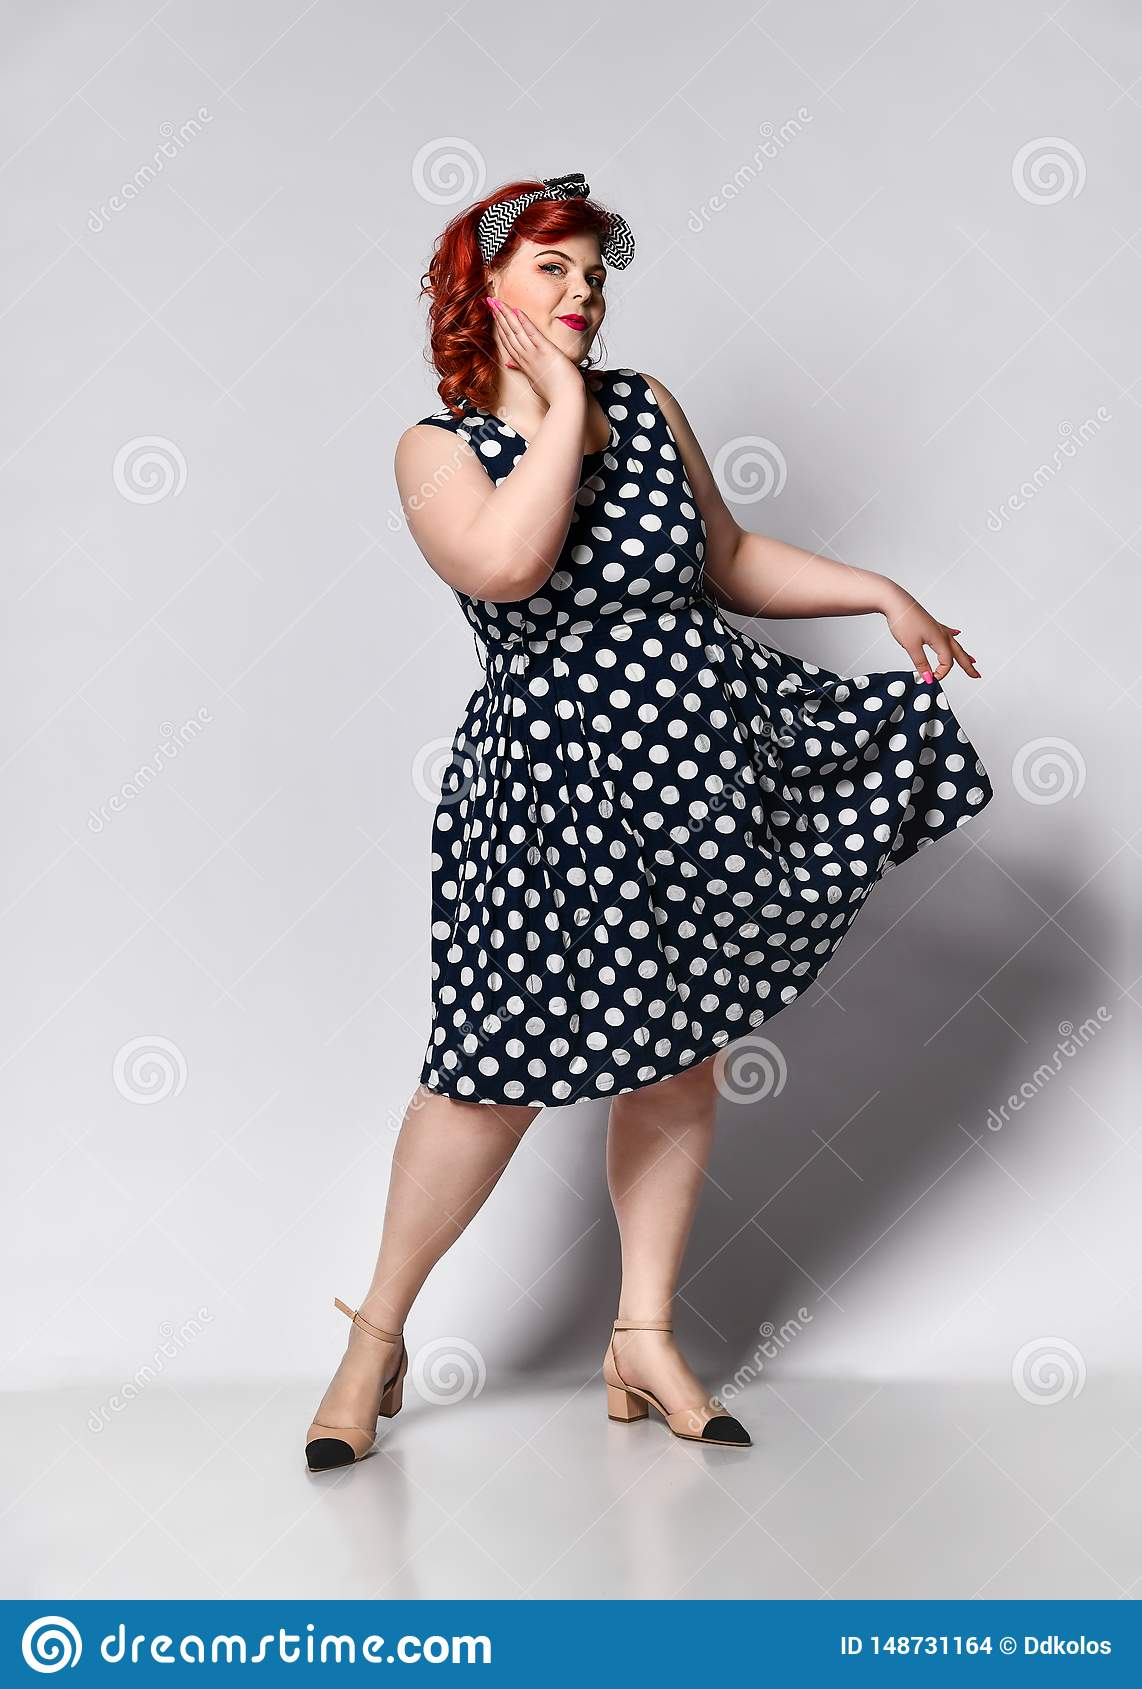 Pin up a female portrait. Beautiful retro fat woman in polka dot dress with red lips and manicure nails and old-style haircut